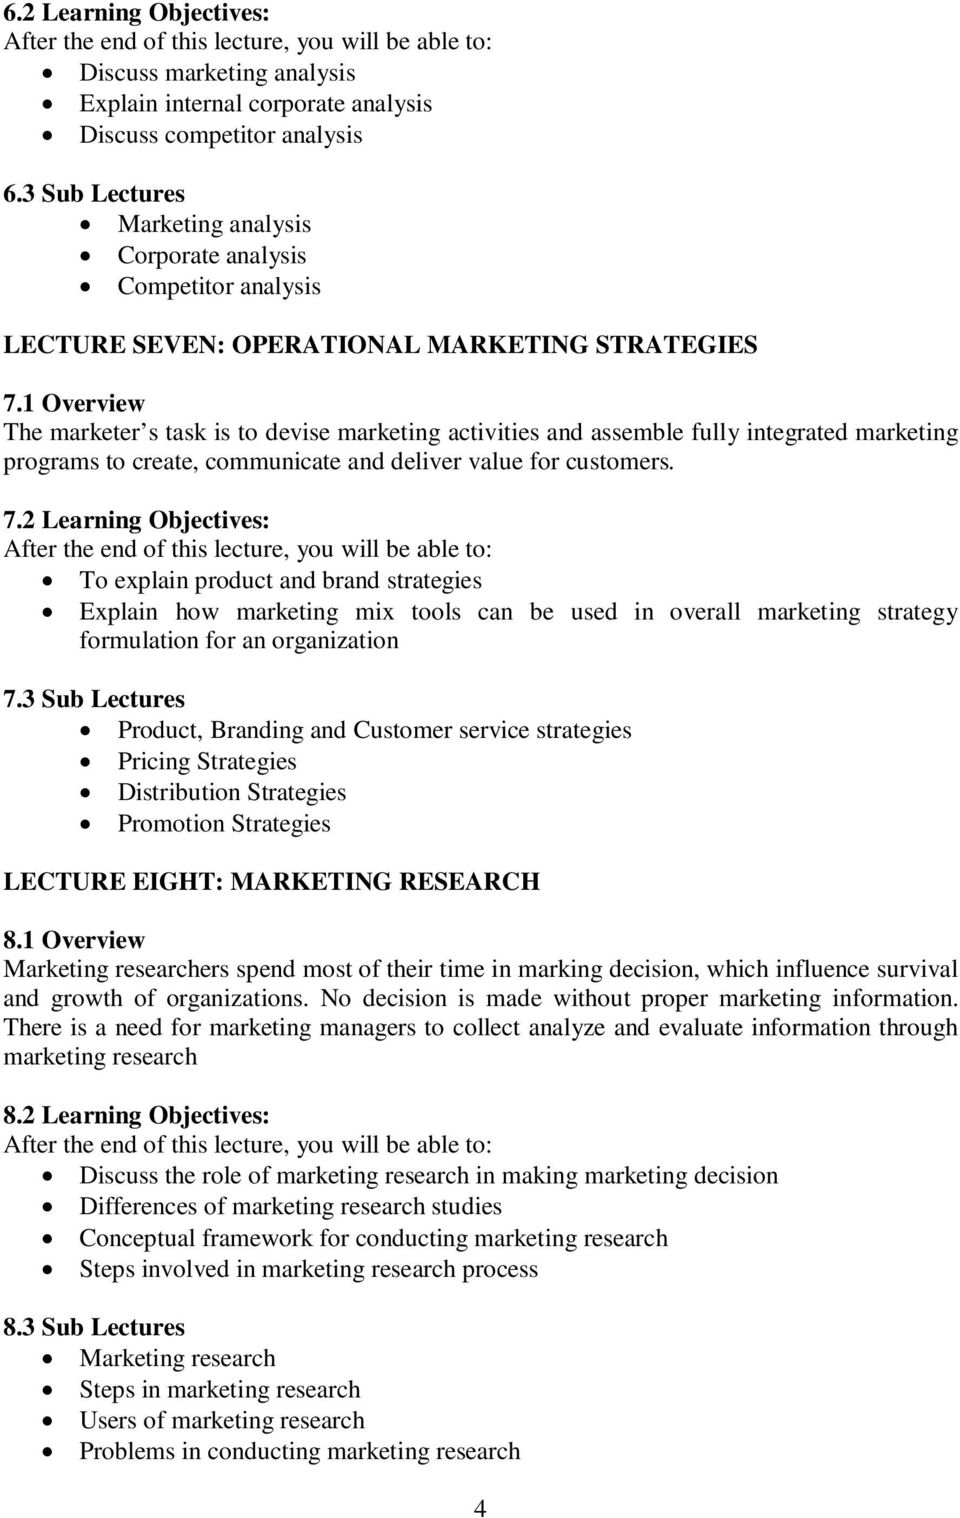 1 Overview The marketer s task is to devise marketing activities and assemble fully integrated marketing programs to create, communicate and deliver value for customers. 7.